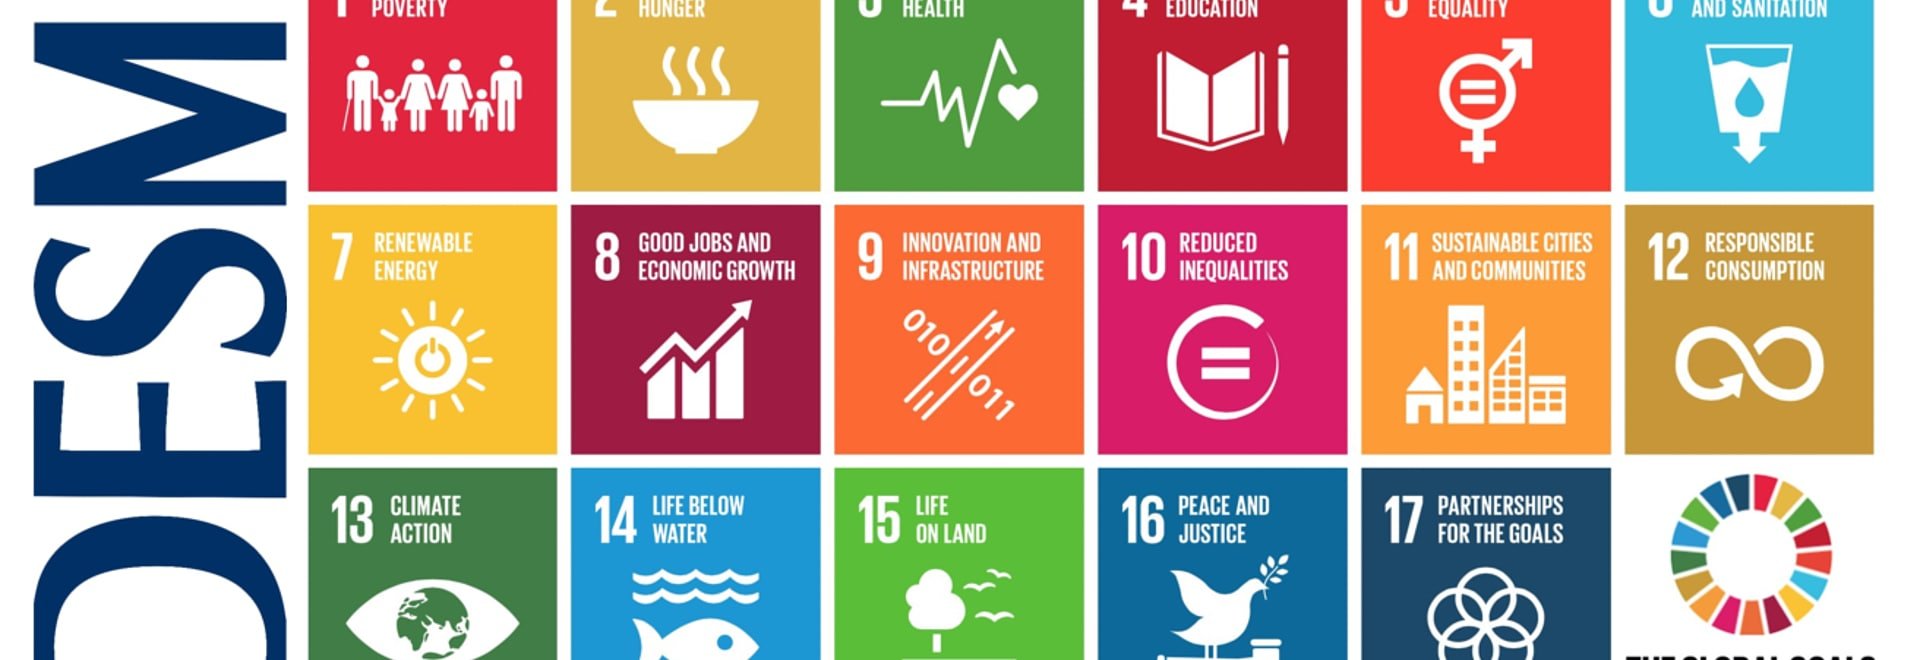 DESMI has committed to the UN sustainable development goals